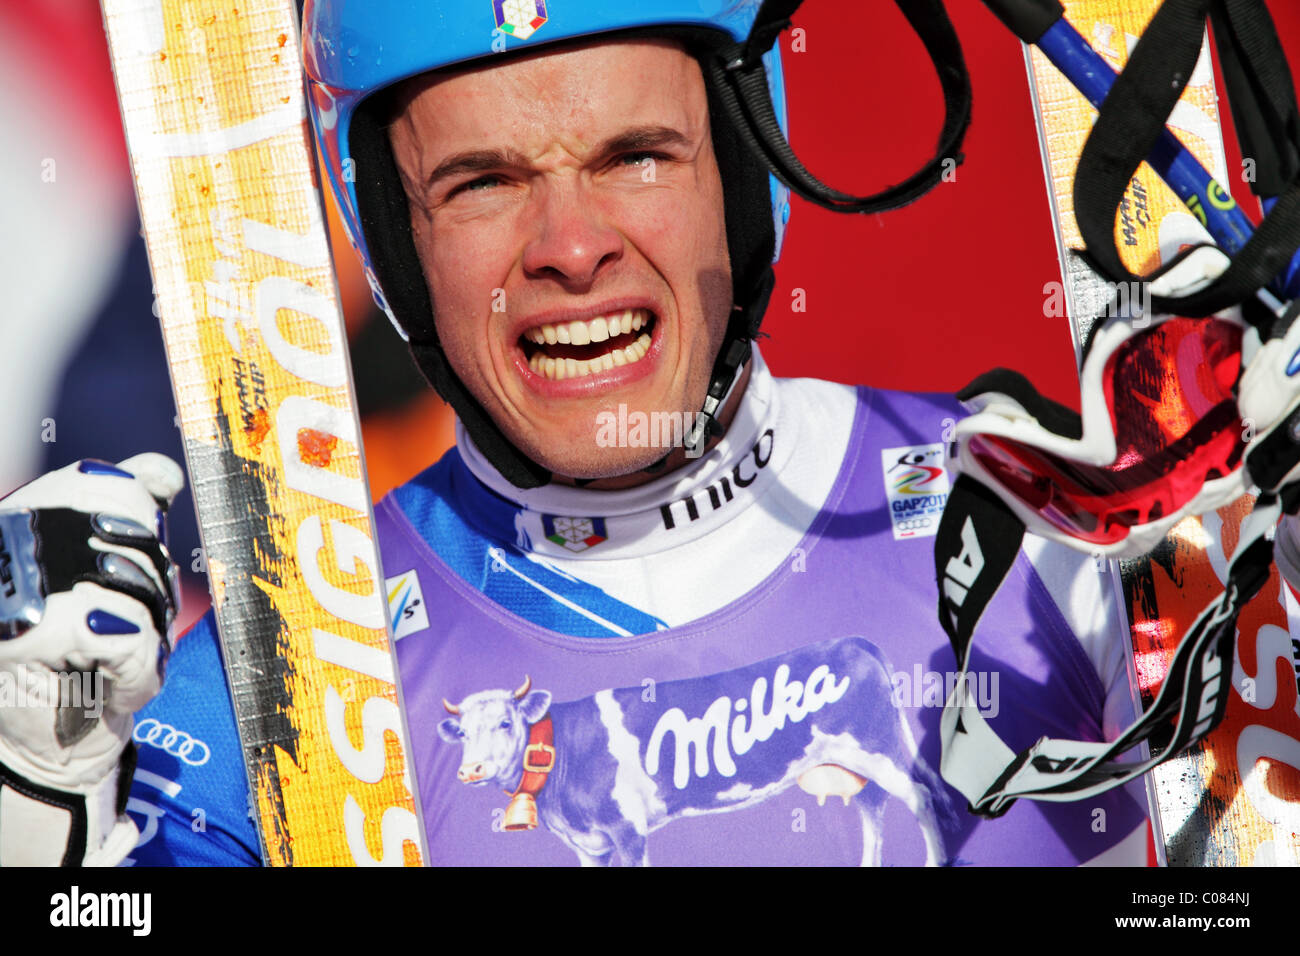 Christof Innerhofer (ITA) at the FIS Alpine World Ski Championships 2011 in Garmisch-Partenkirchen - Stock Image